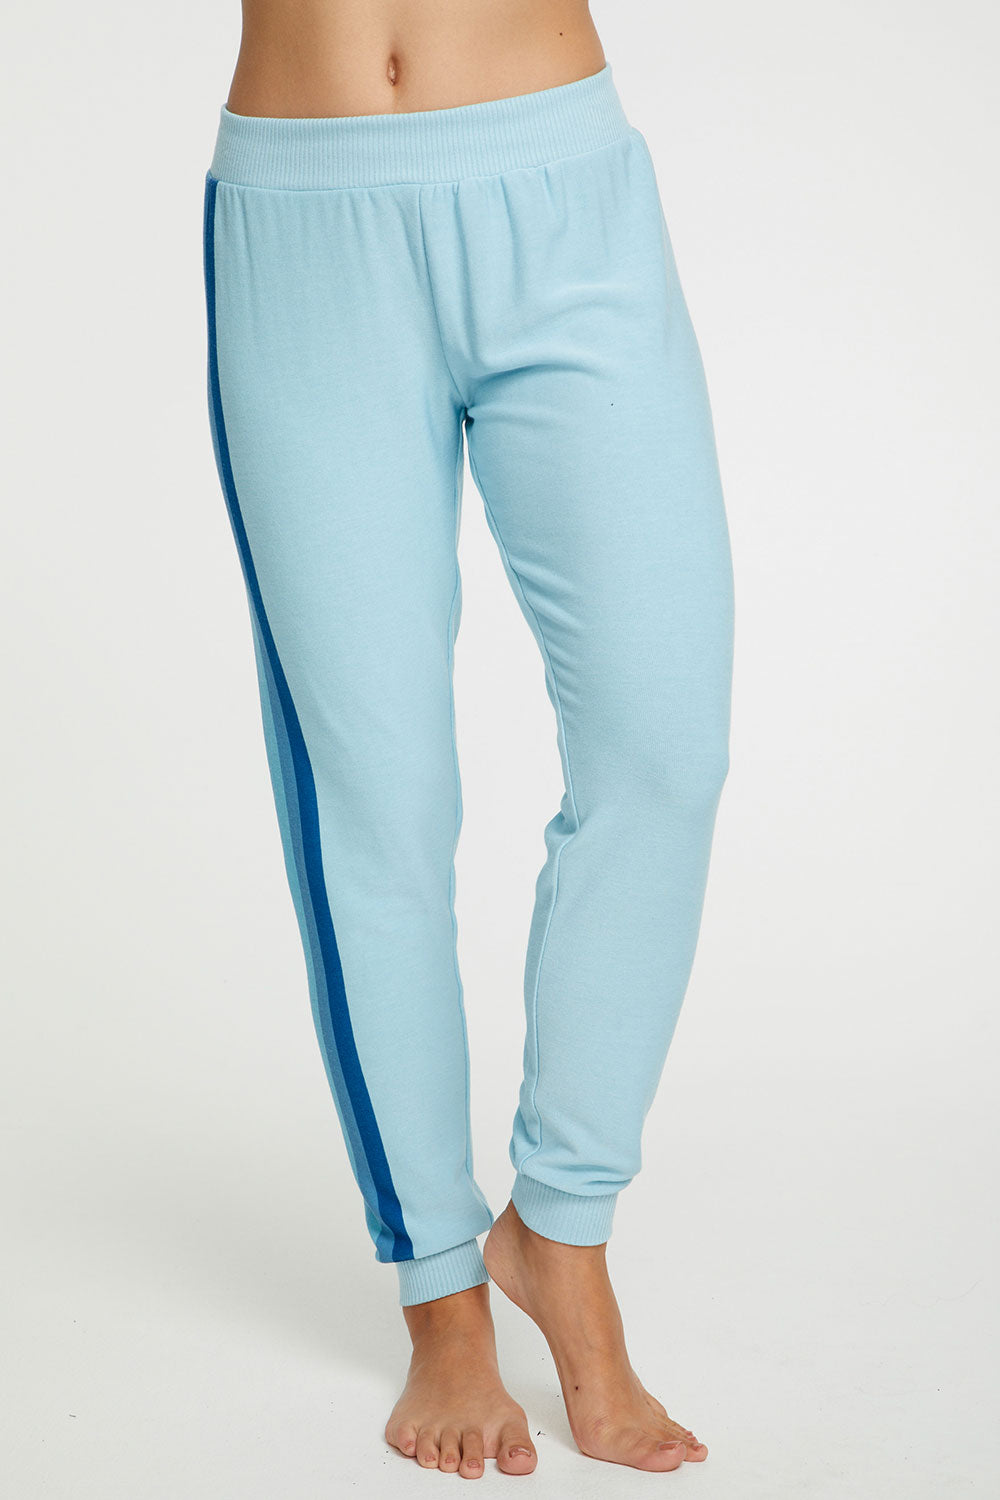 Blue Stripes Pant WOMENS chaserbrand4.myshopify.com